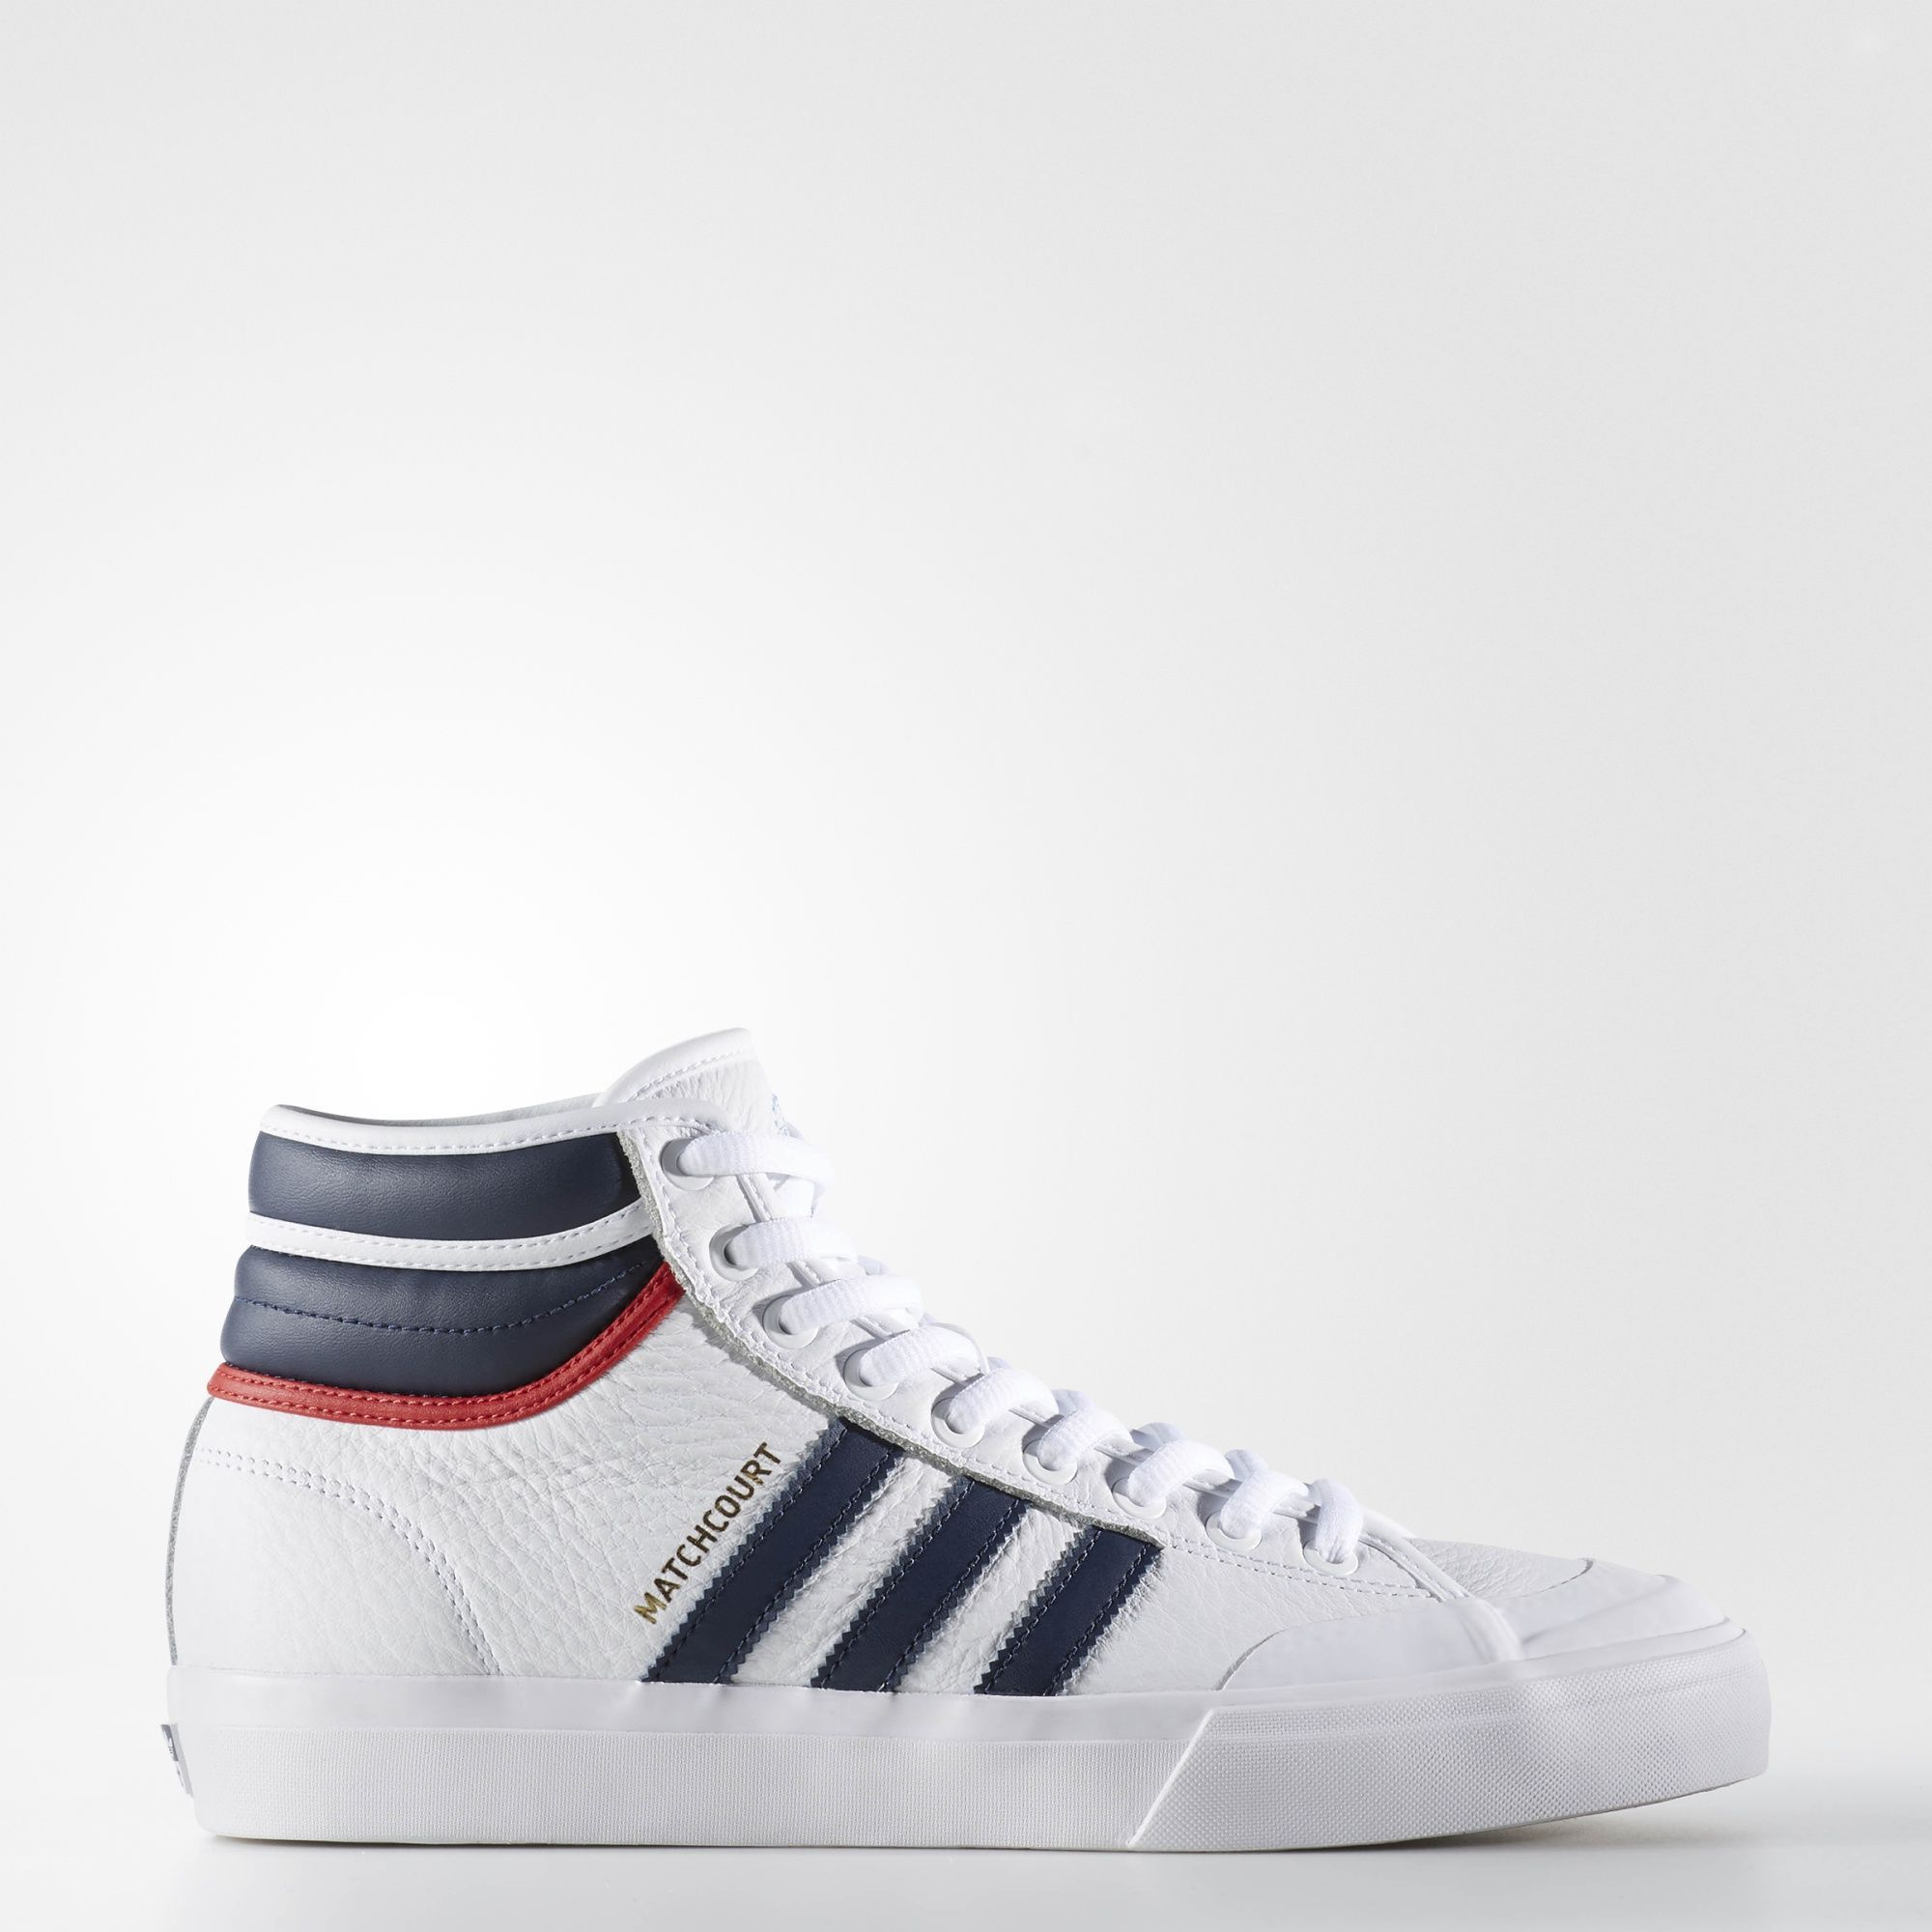 adidas Adidas Originals Matchcourt High Rx2 Sneakers In 18jN97